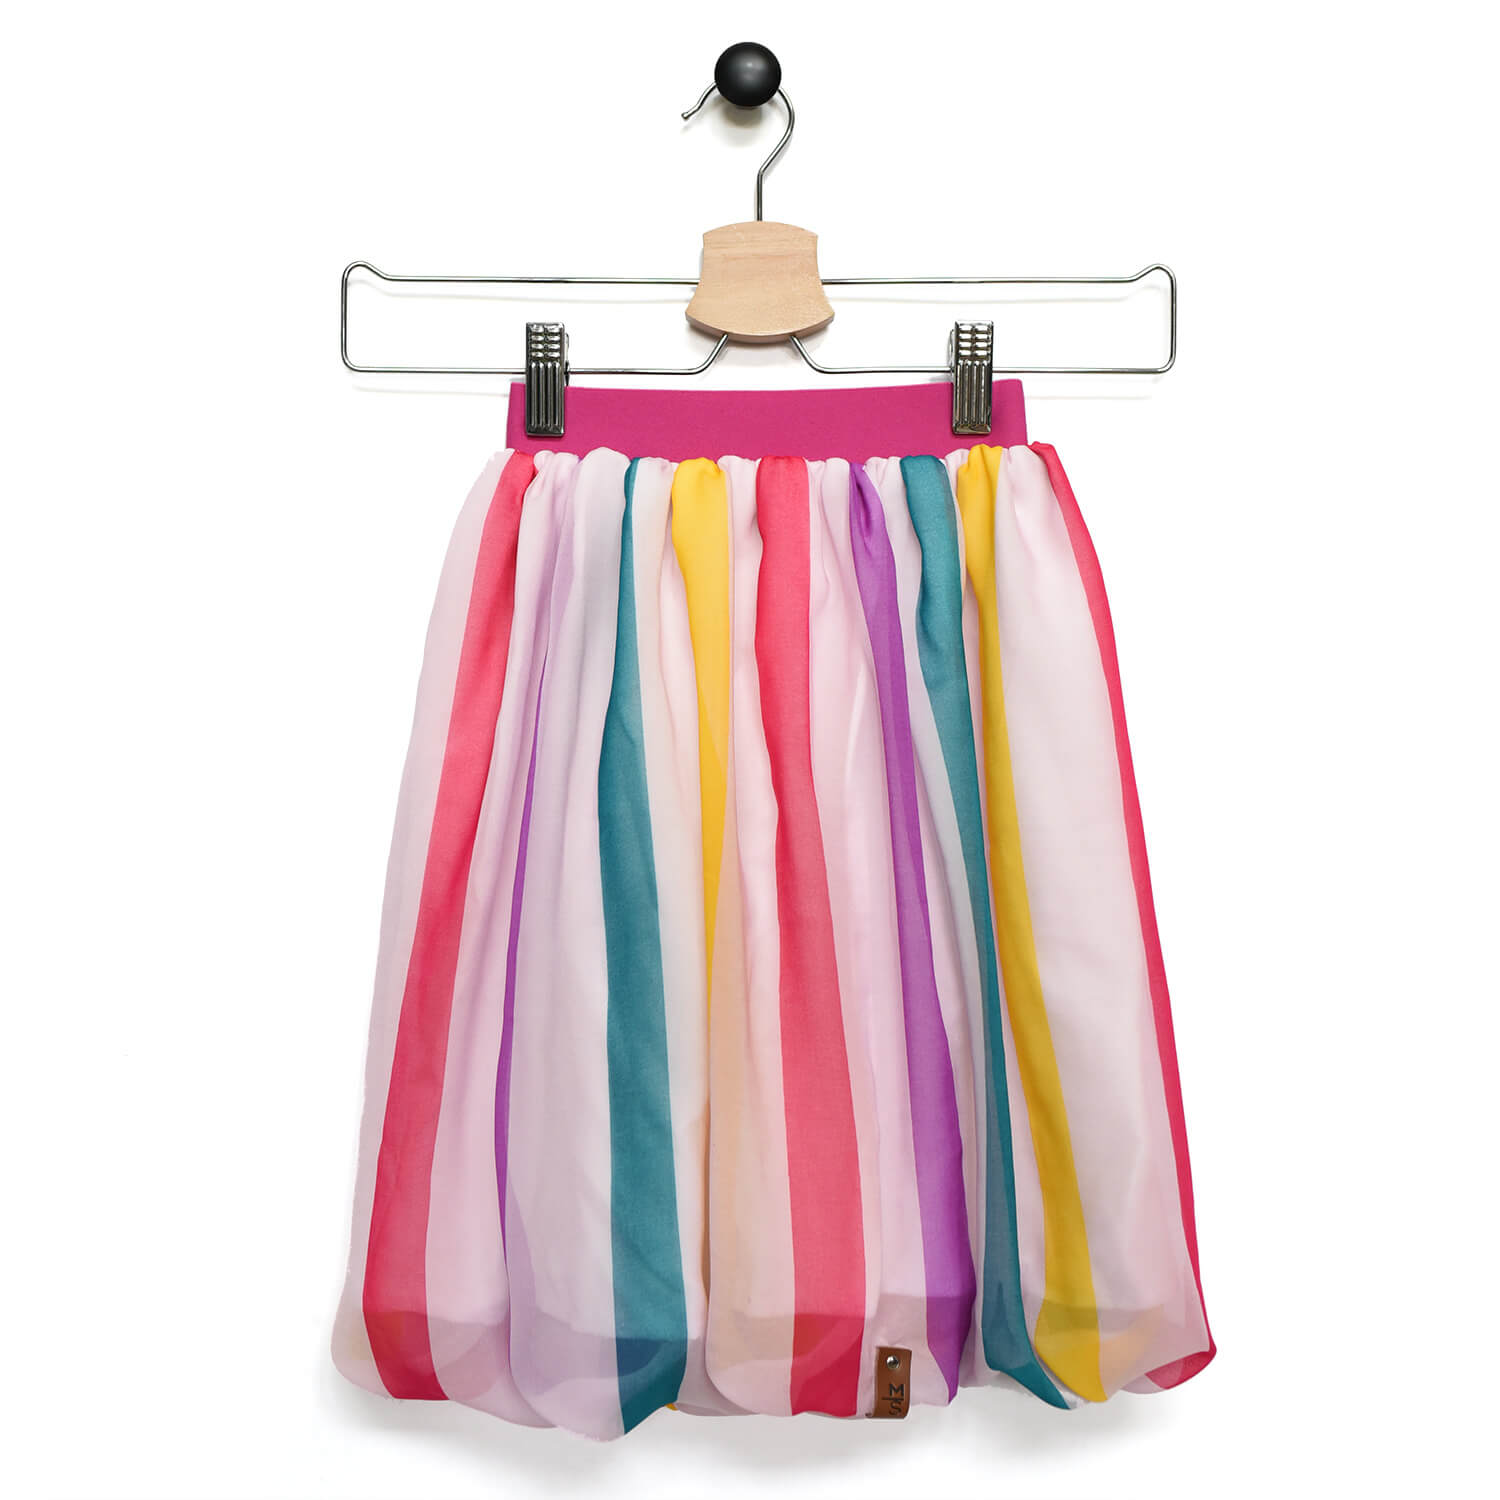 Chelsea Maxi Skirt - Rainbow Stripes